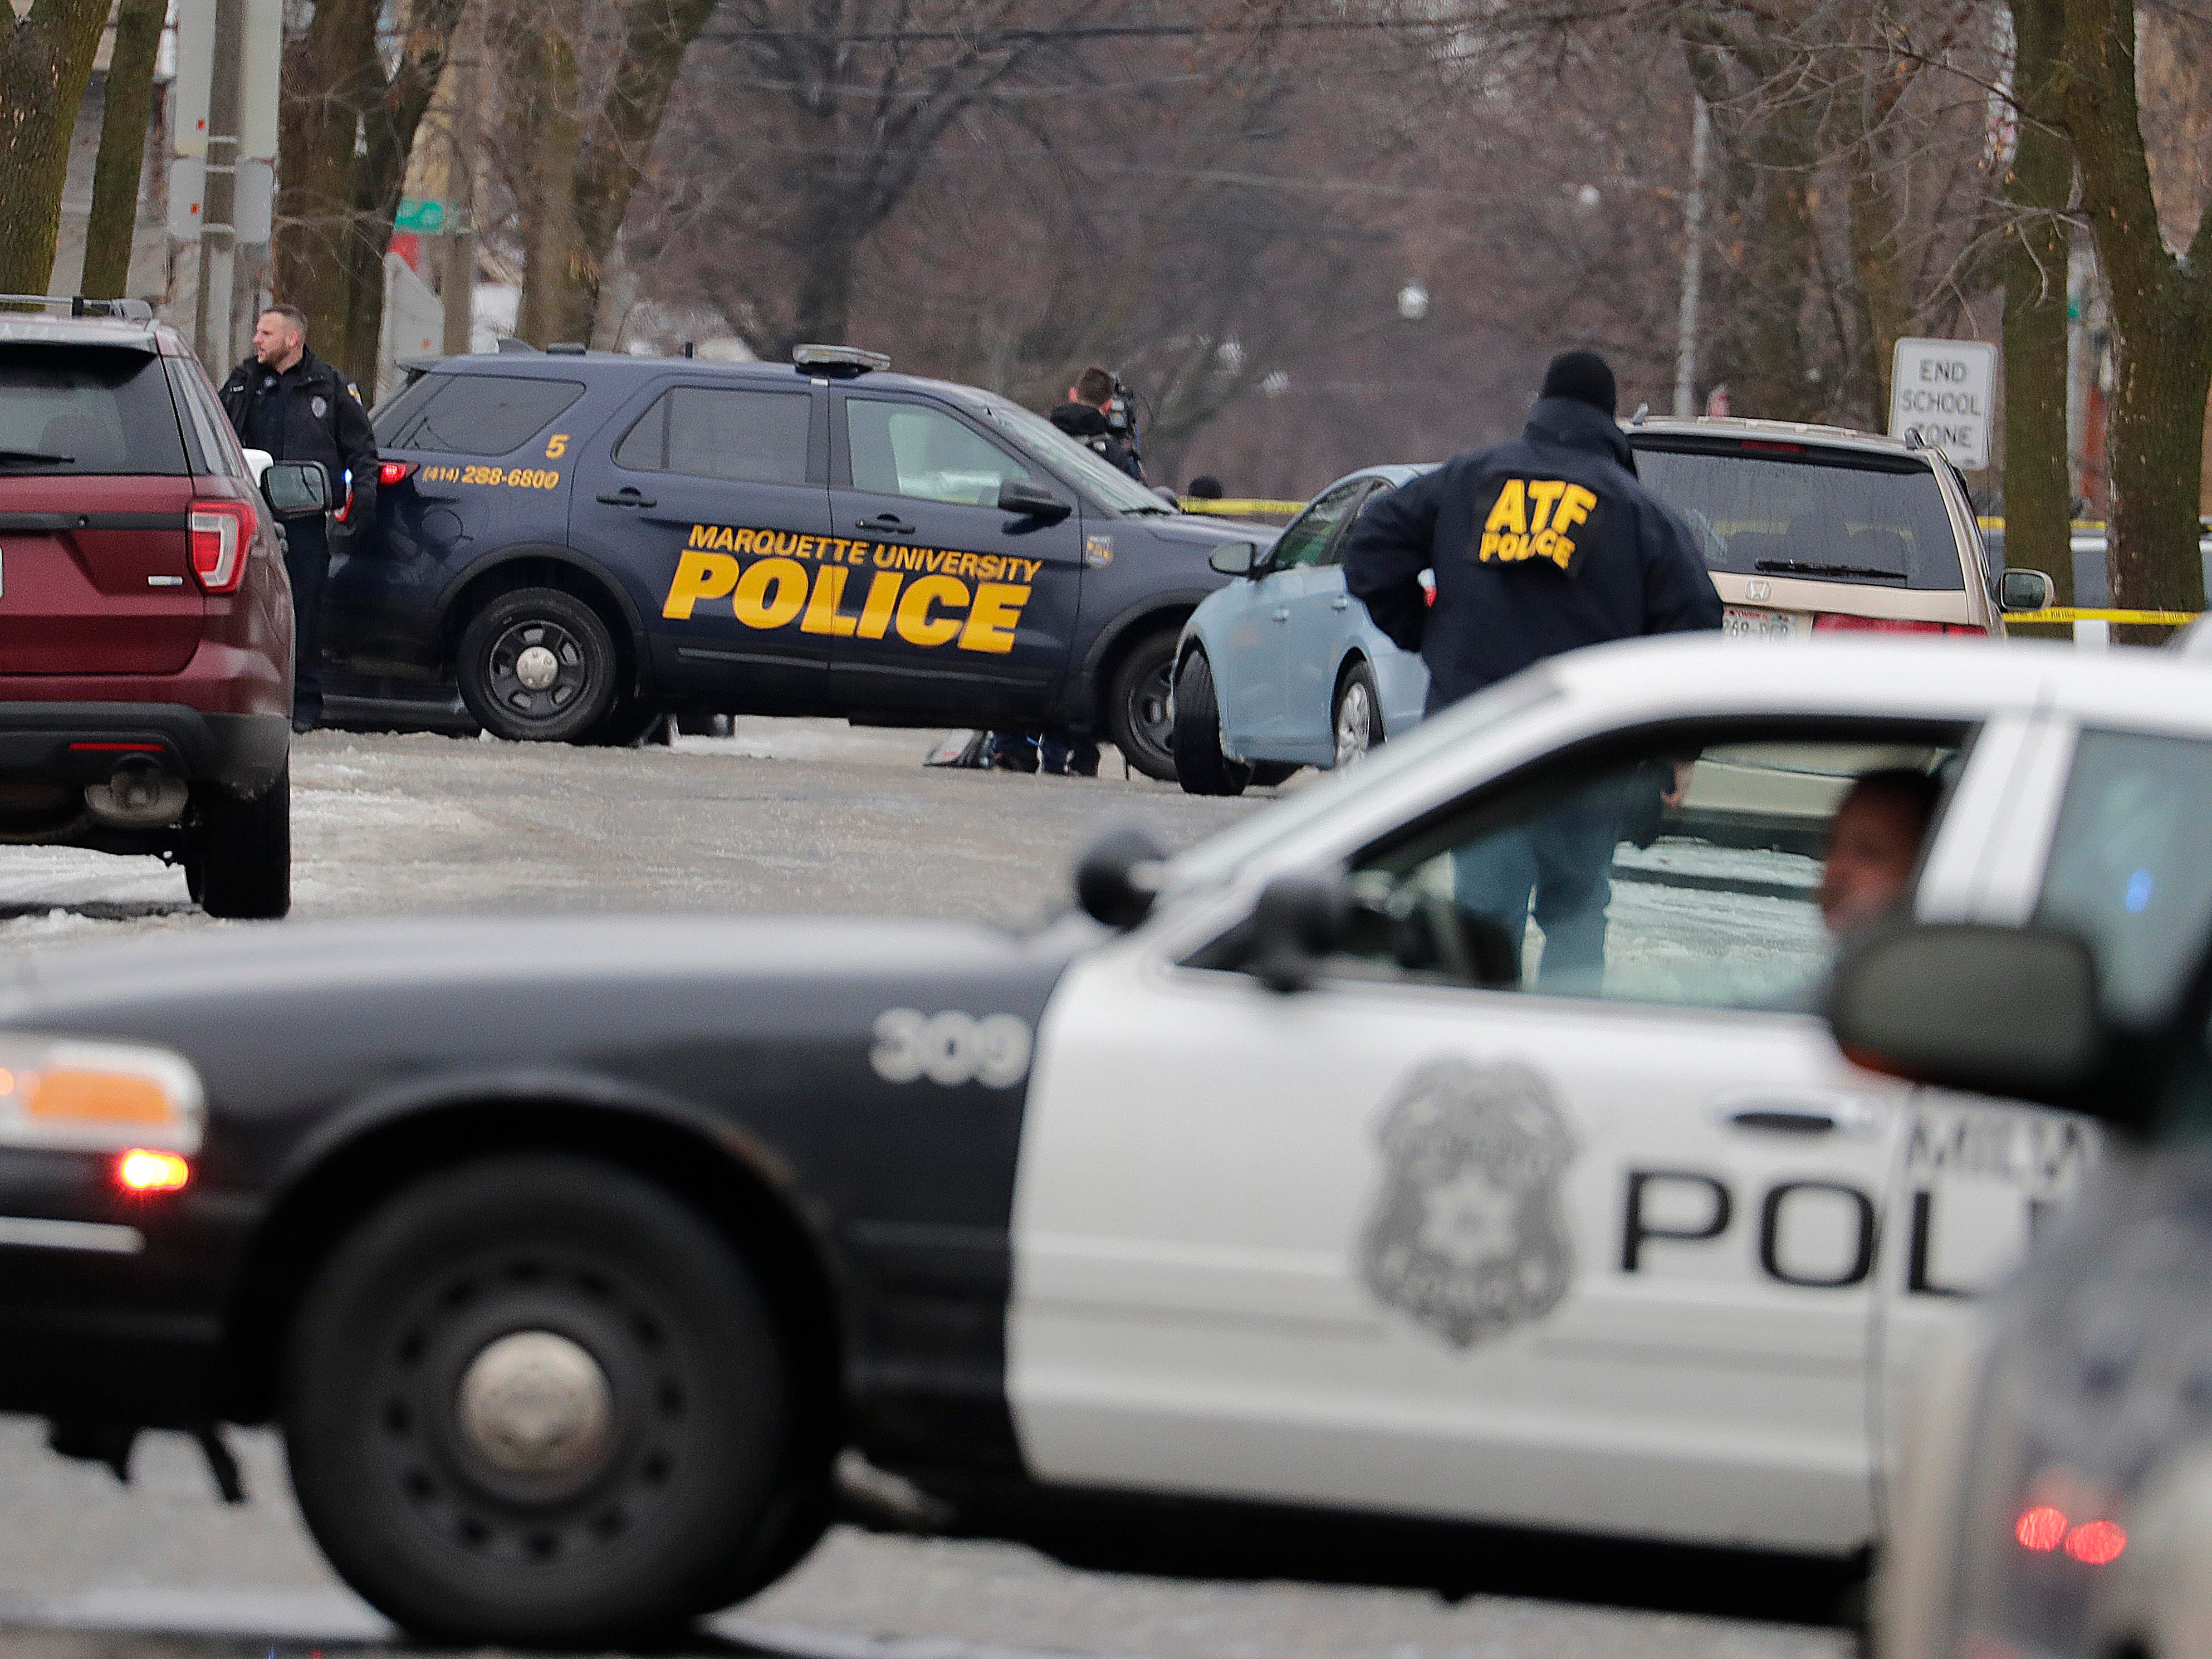 Officers block the intersection of South 12th and West Dakota streets near where a Milwaukee police officer was shot Wednesday morning on the city's south side. The shooting occurred during the execution of a search warrant at a residence. The officer, who was taken to Froedtert Hospital for treatment, died.